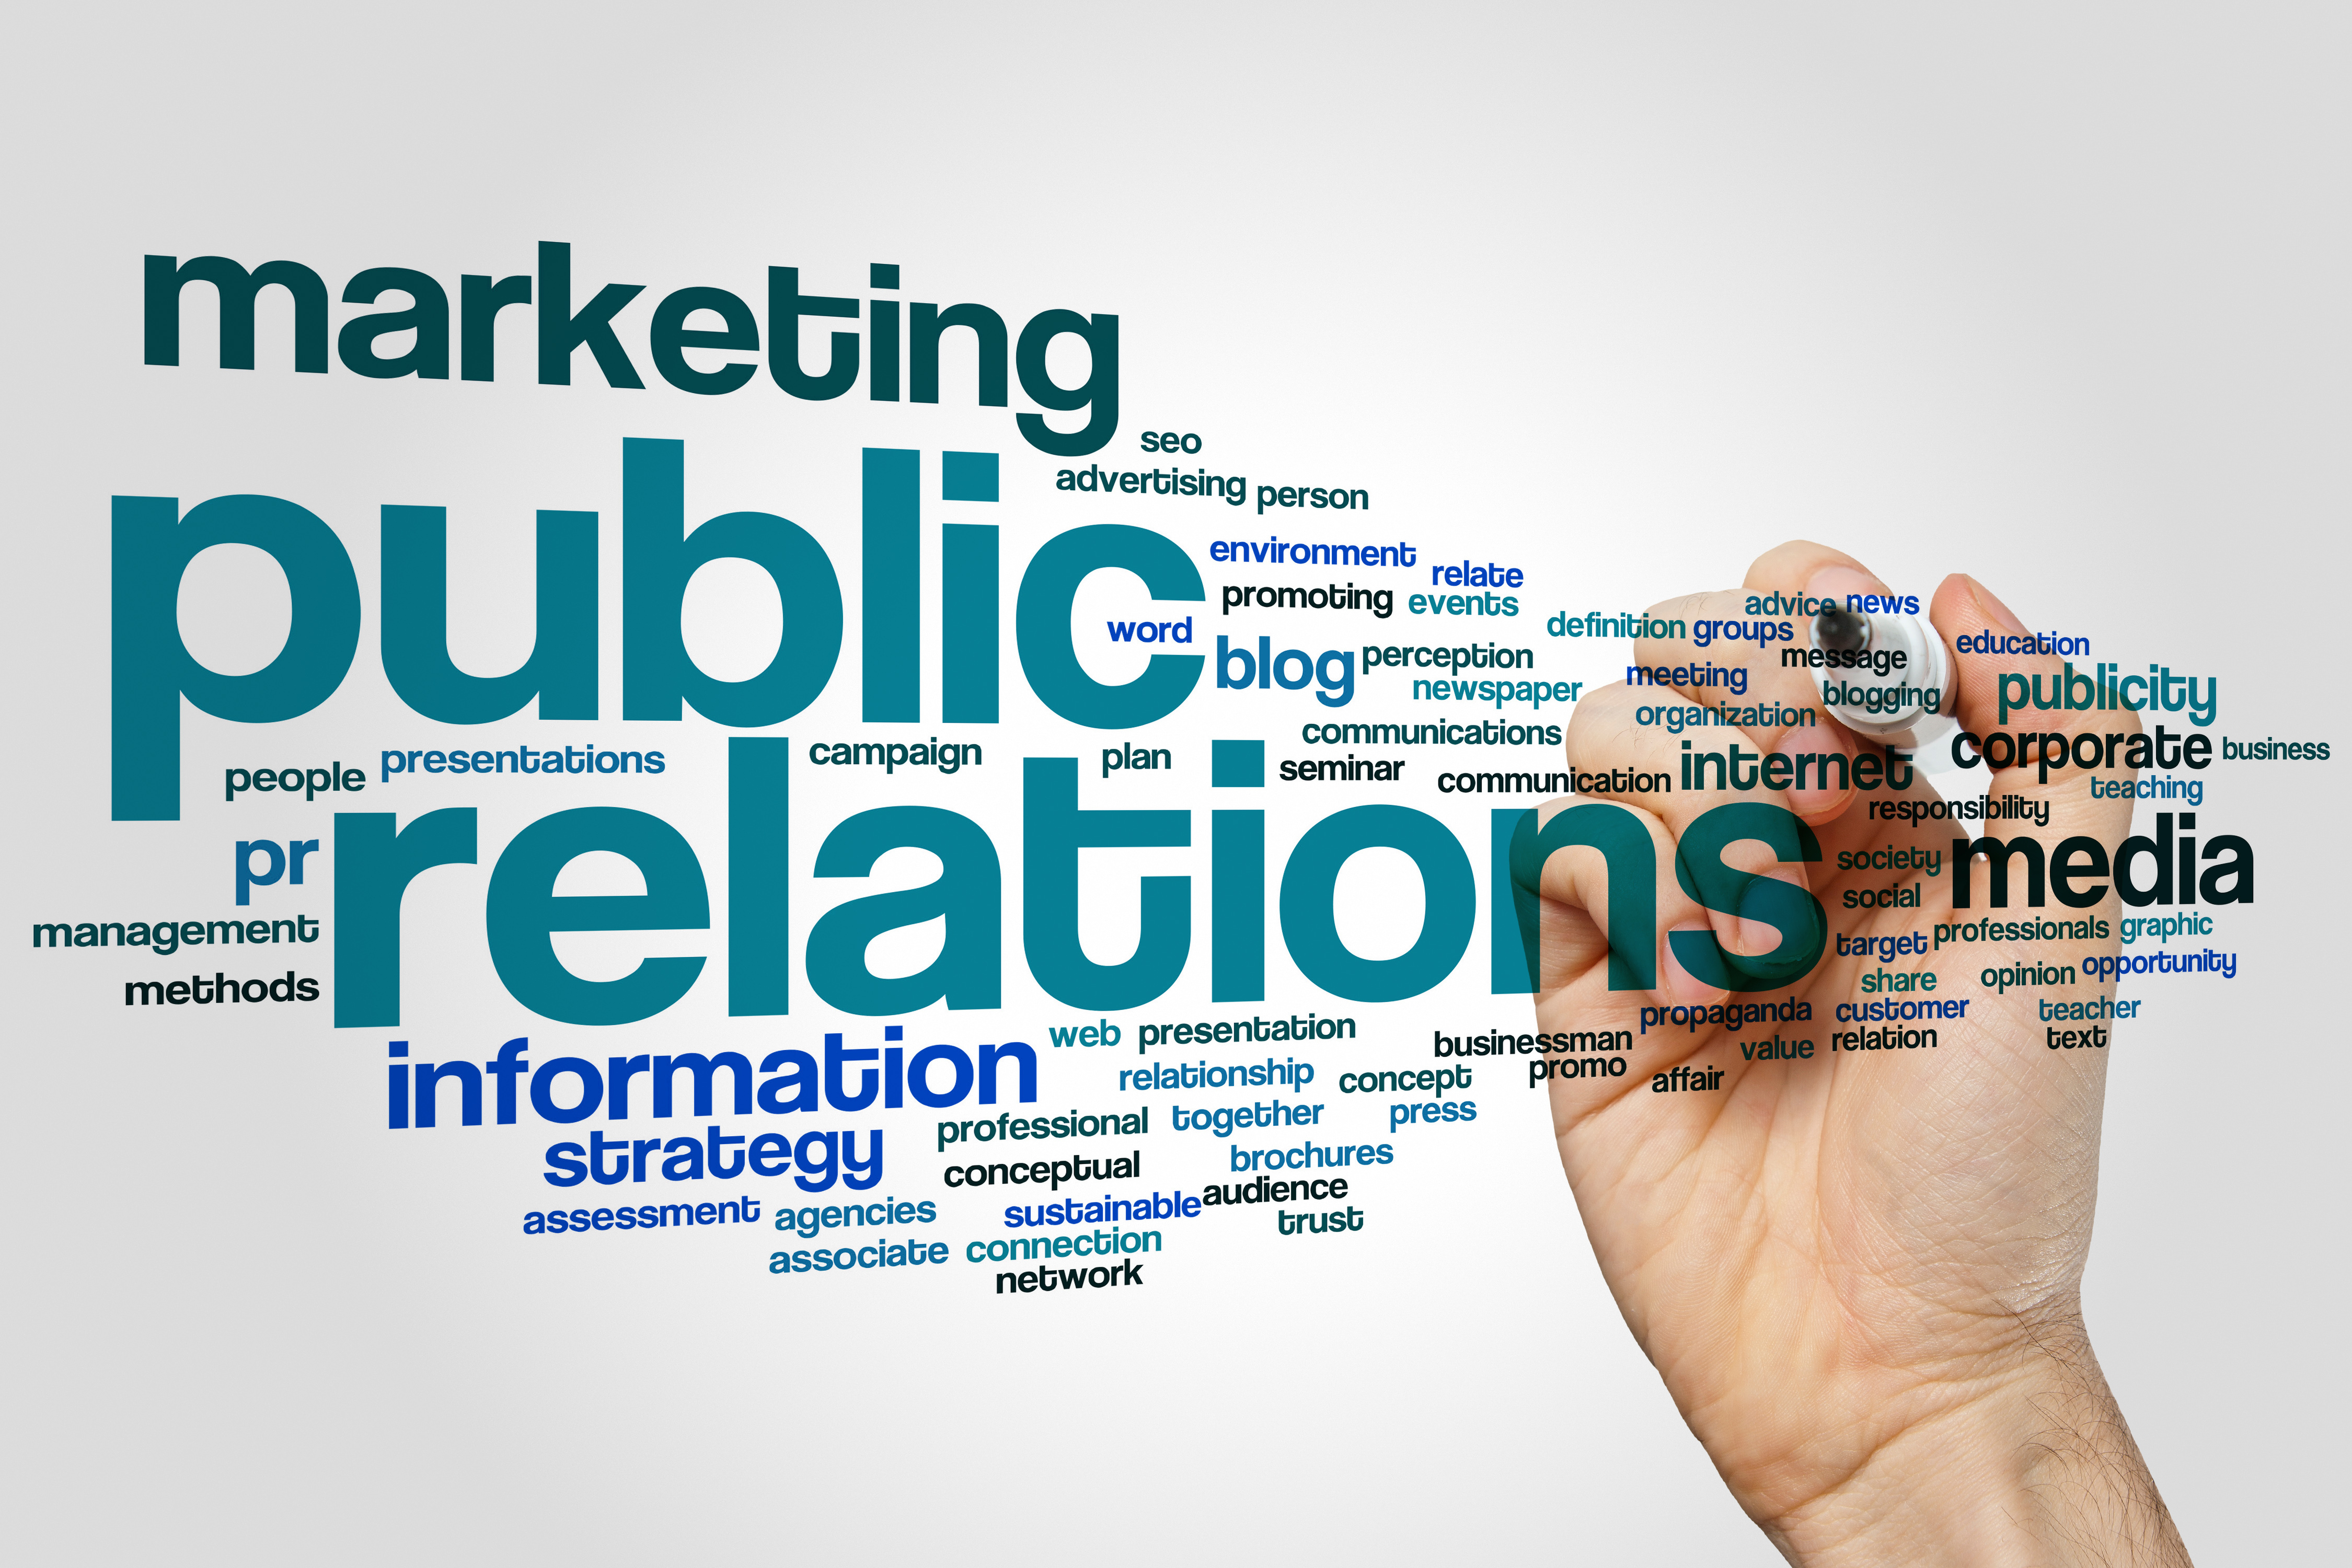 public relations marketing and development essays in leadership in Public relation public relation definition public relation is a management function that involves monitoring and evaluating public attitudes and maintaining mutual relations and understanding between an organization and its public.